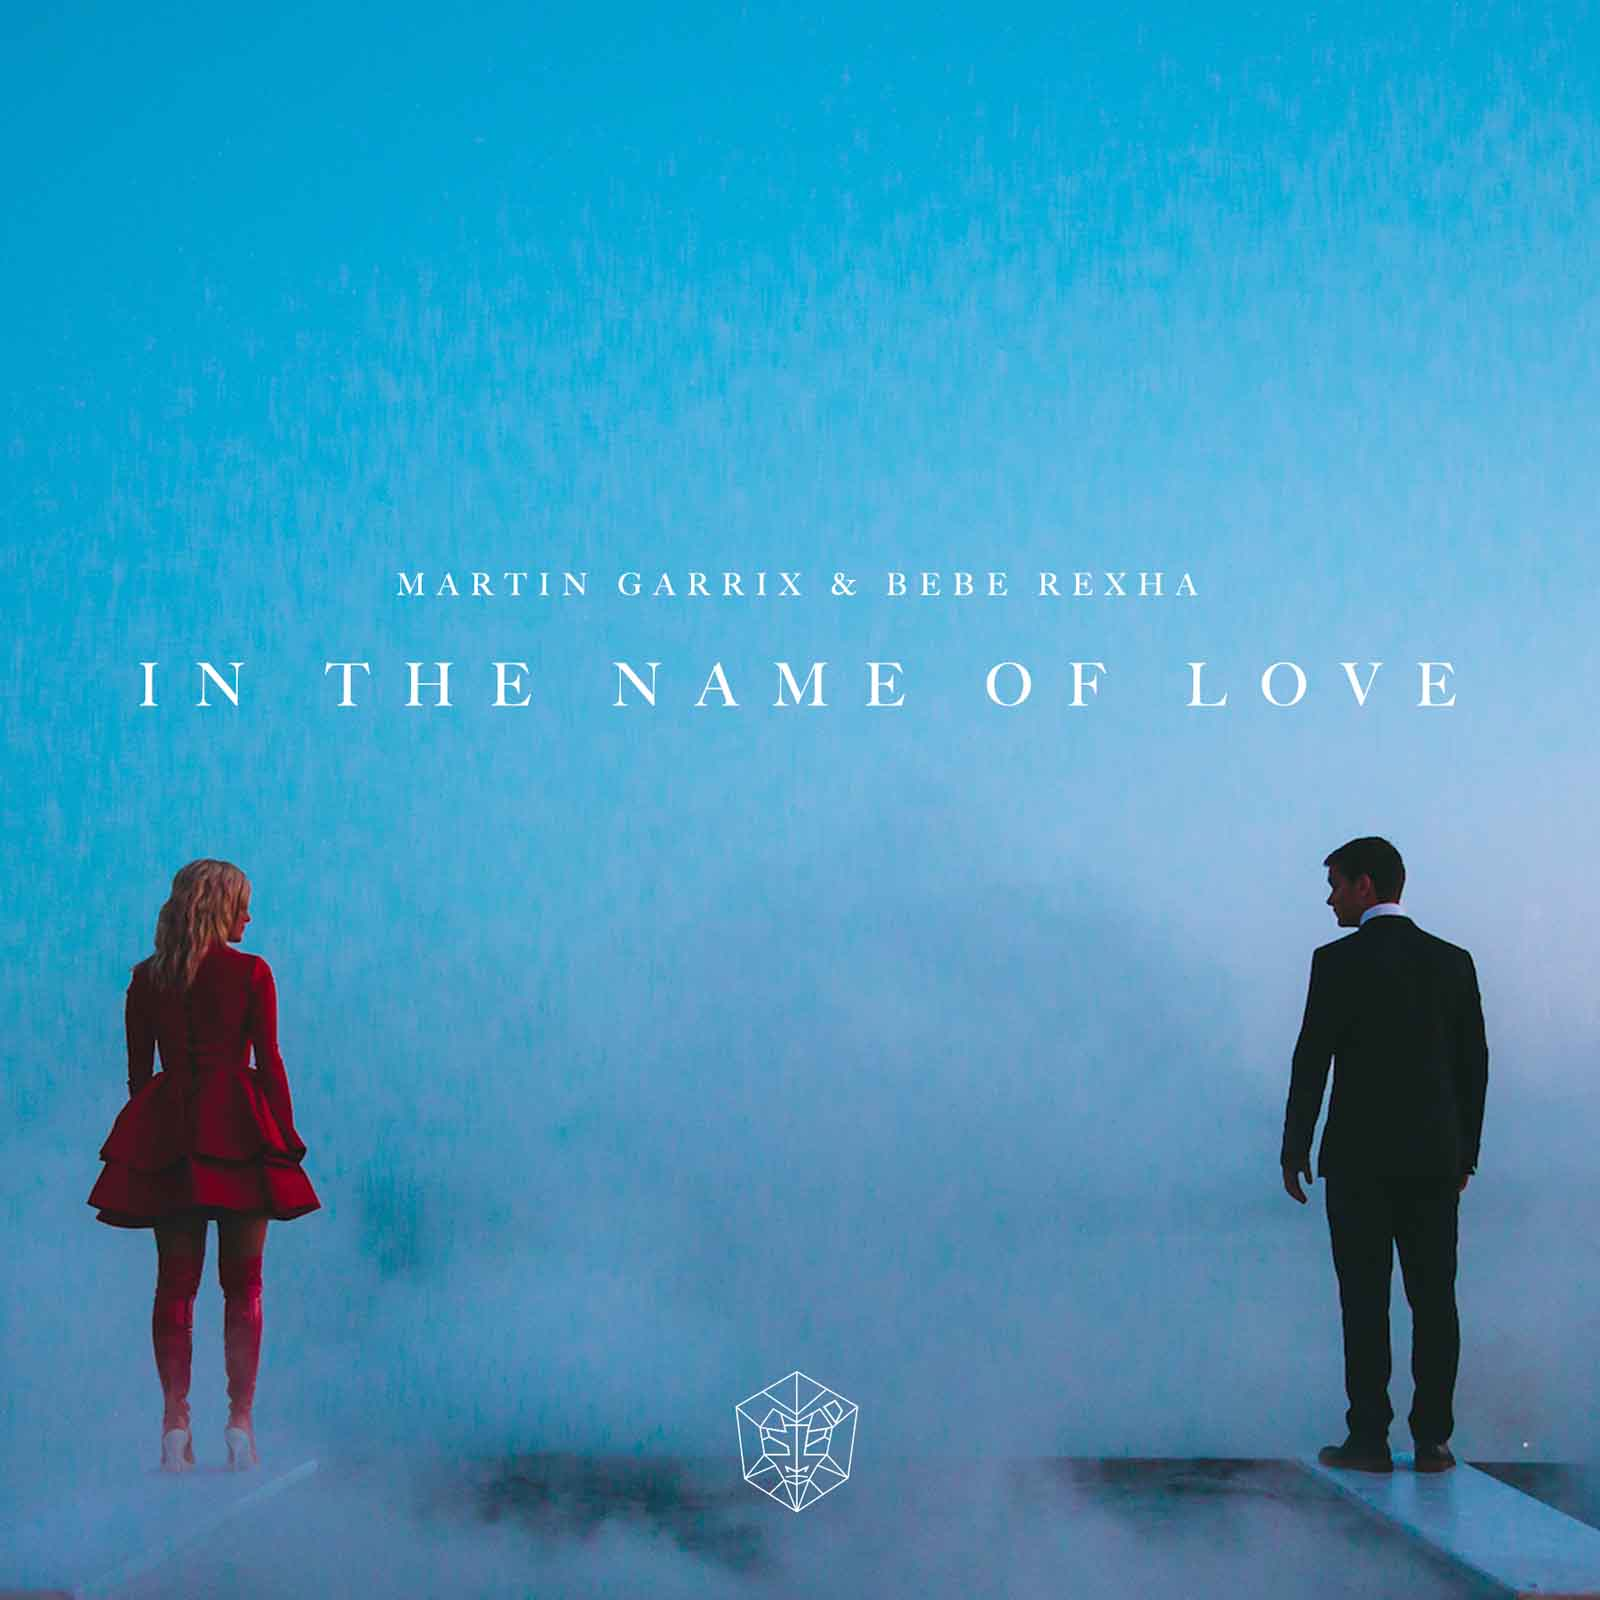 Martin Garrix JustMusic.fr_In-the-Name-of-Love-(single-art)_1600x1600